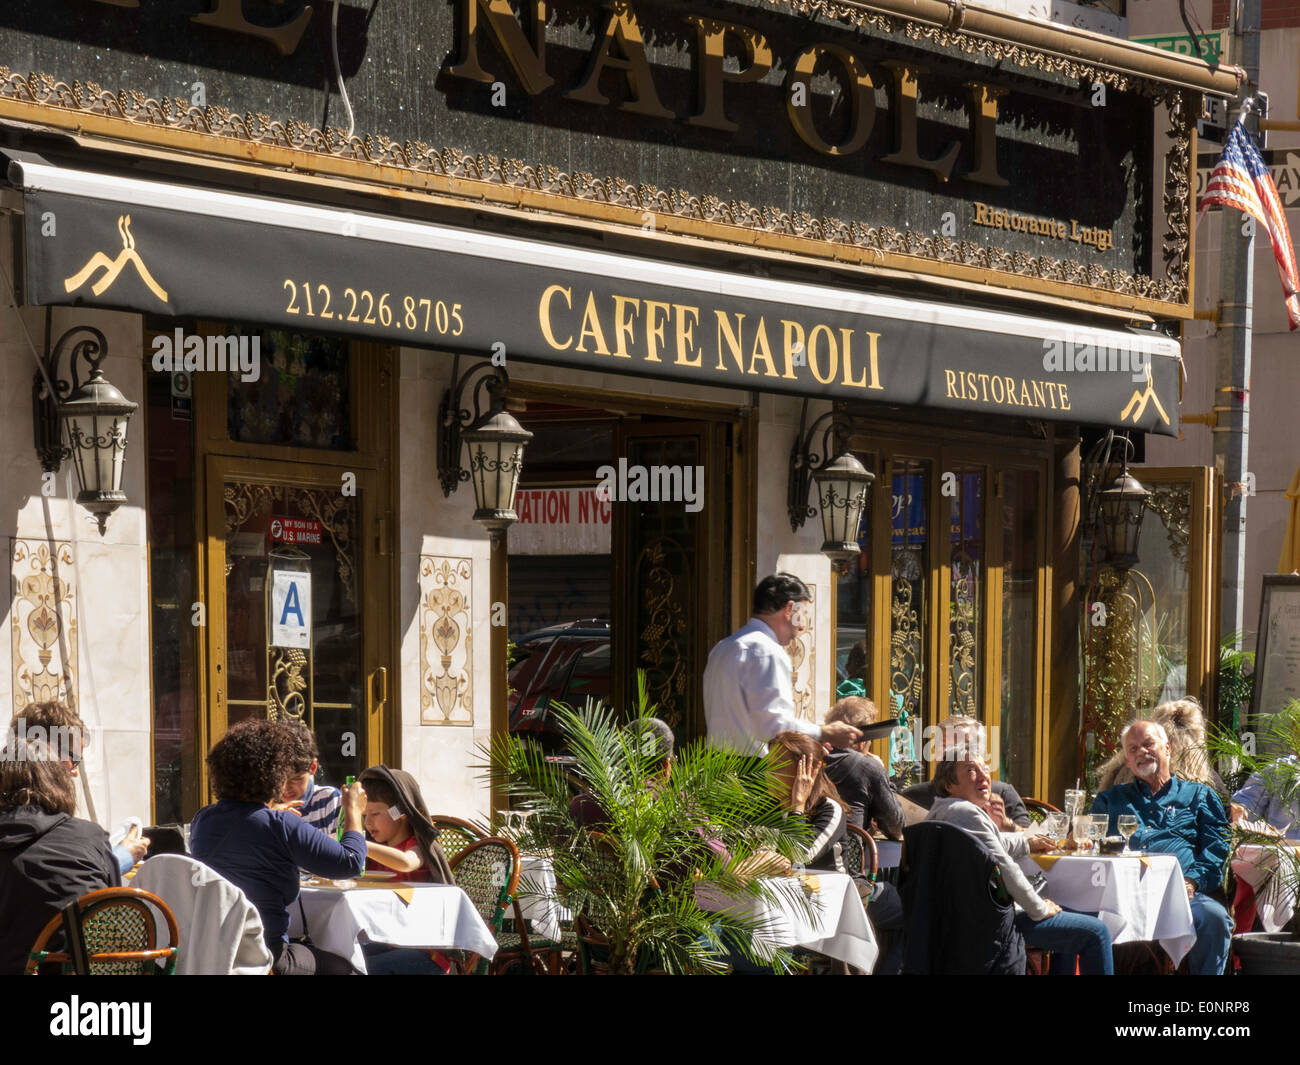 Caffe Napoli Italian Restaurant Little Italy Nyc Stock